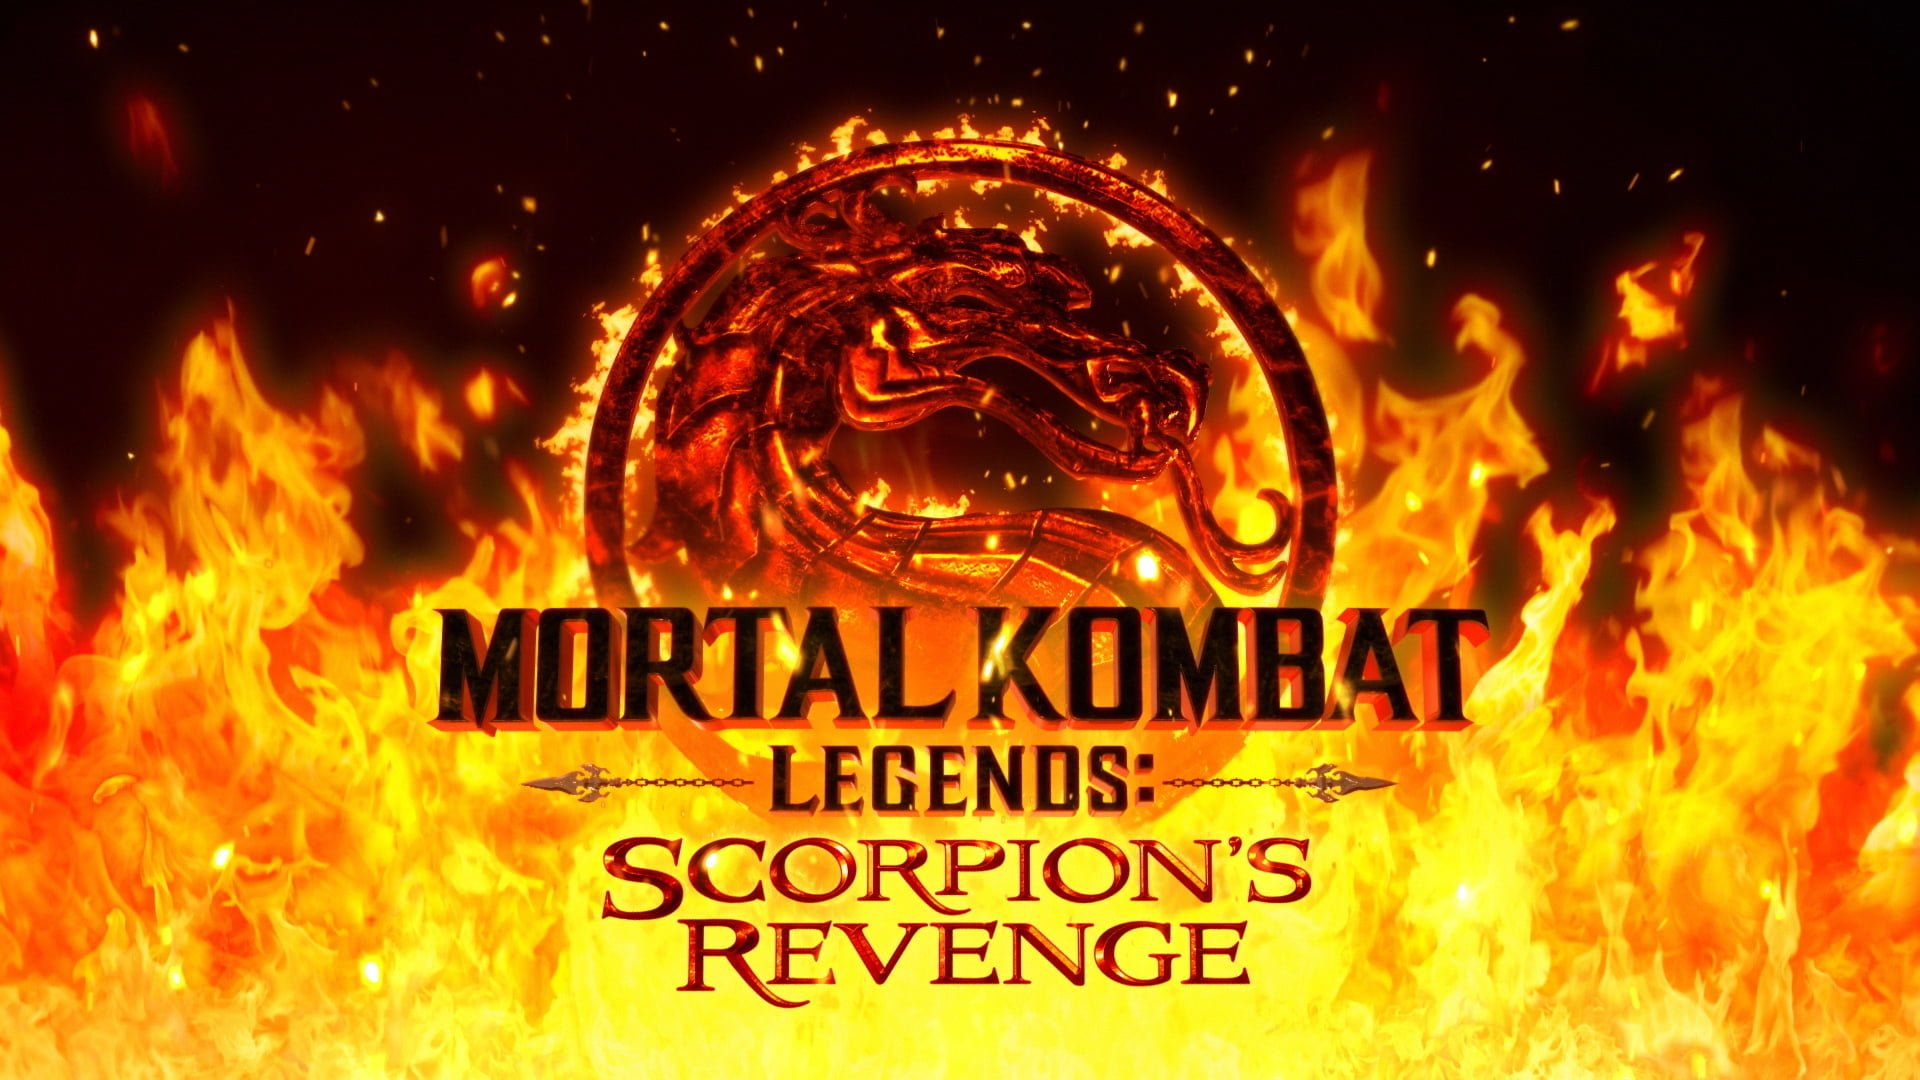 Mortal Kombat Legends: Scorpion's Revenge, trailer ufficiale